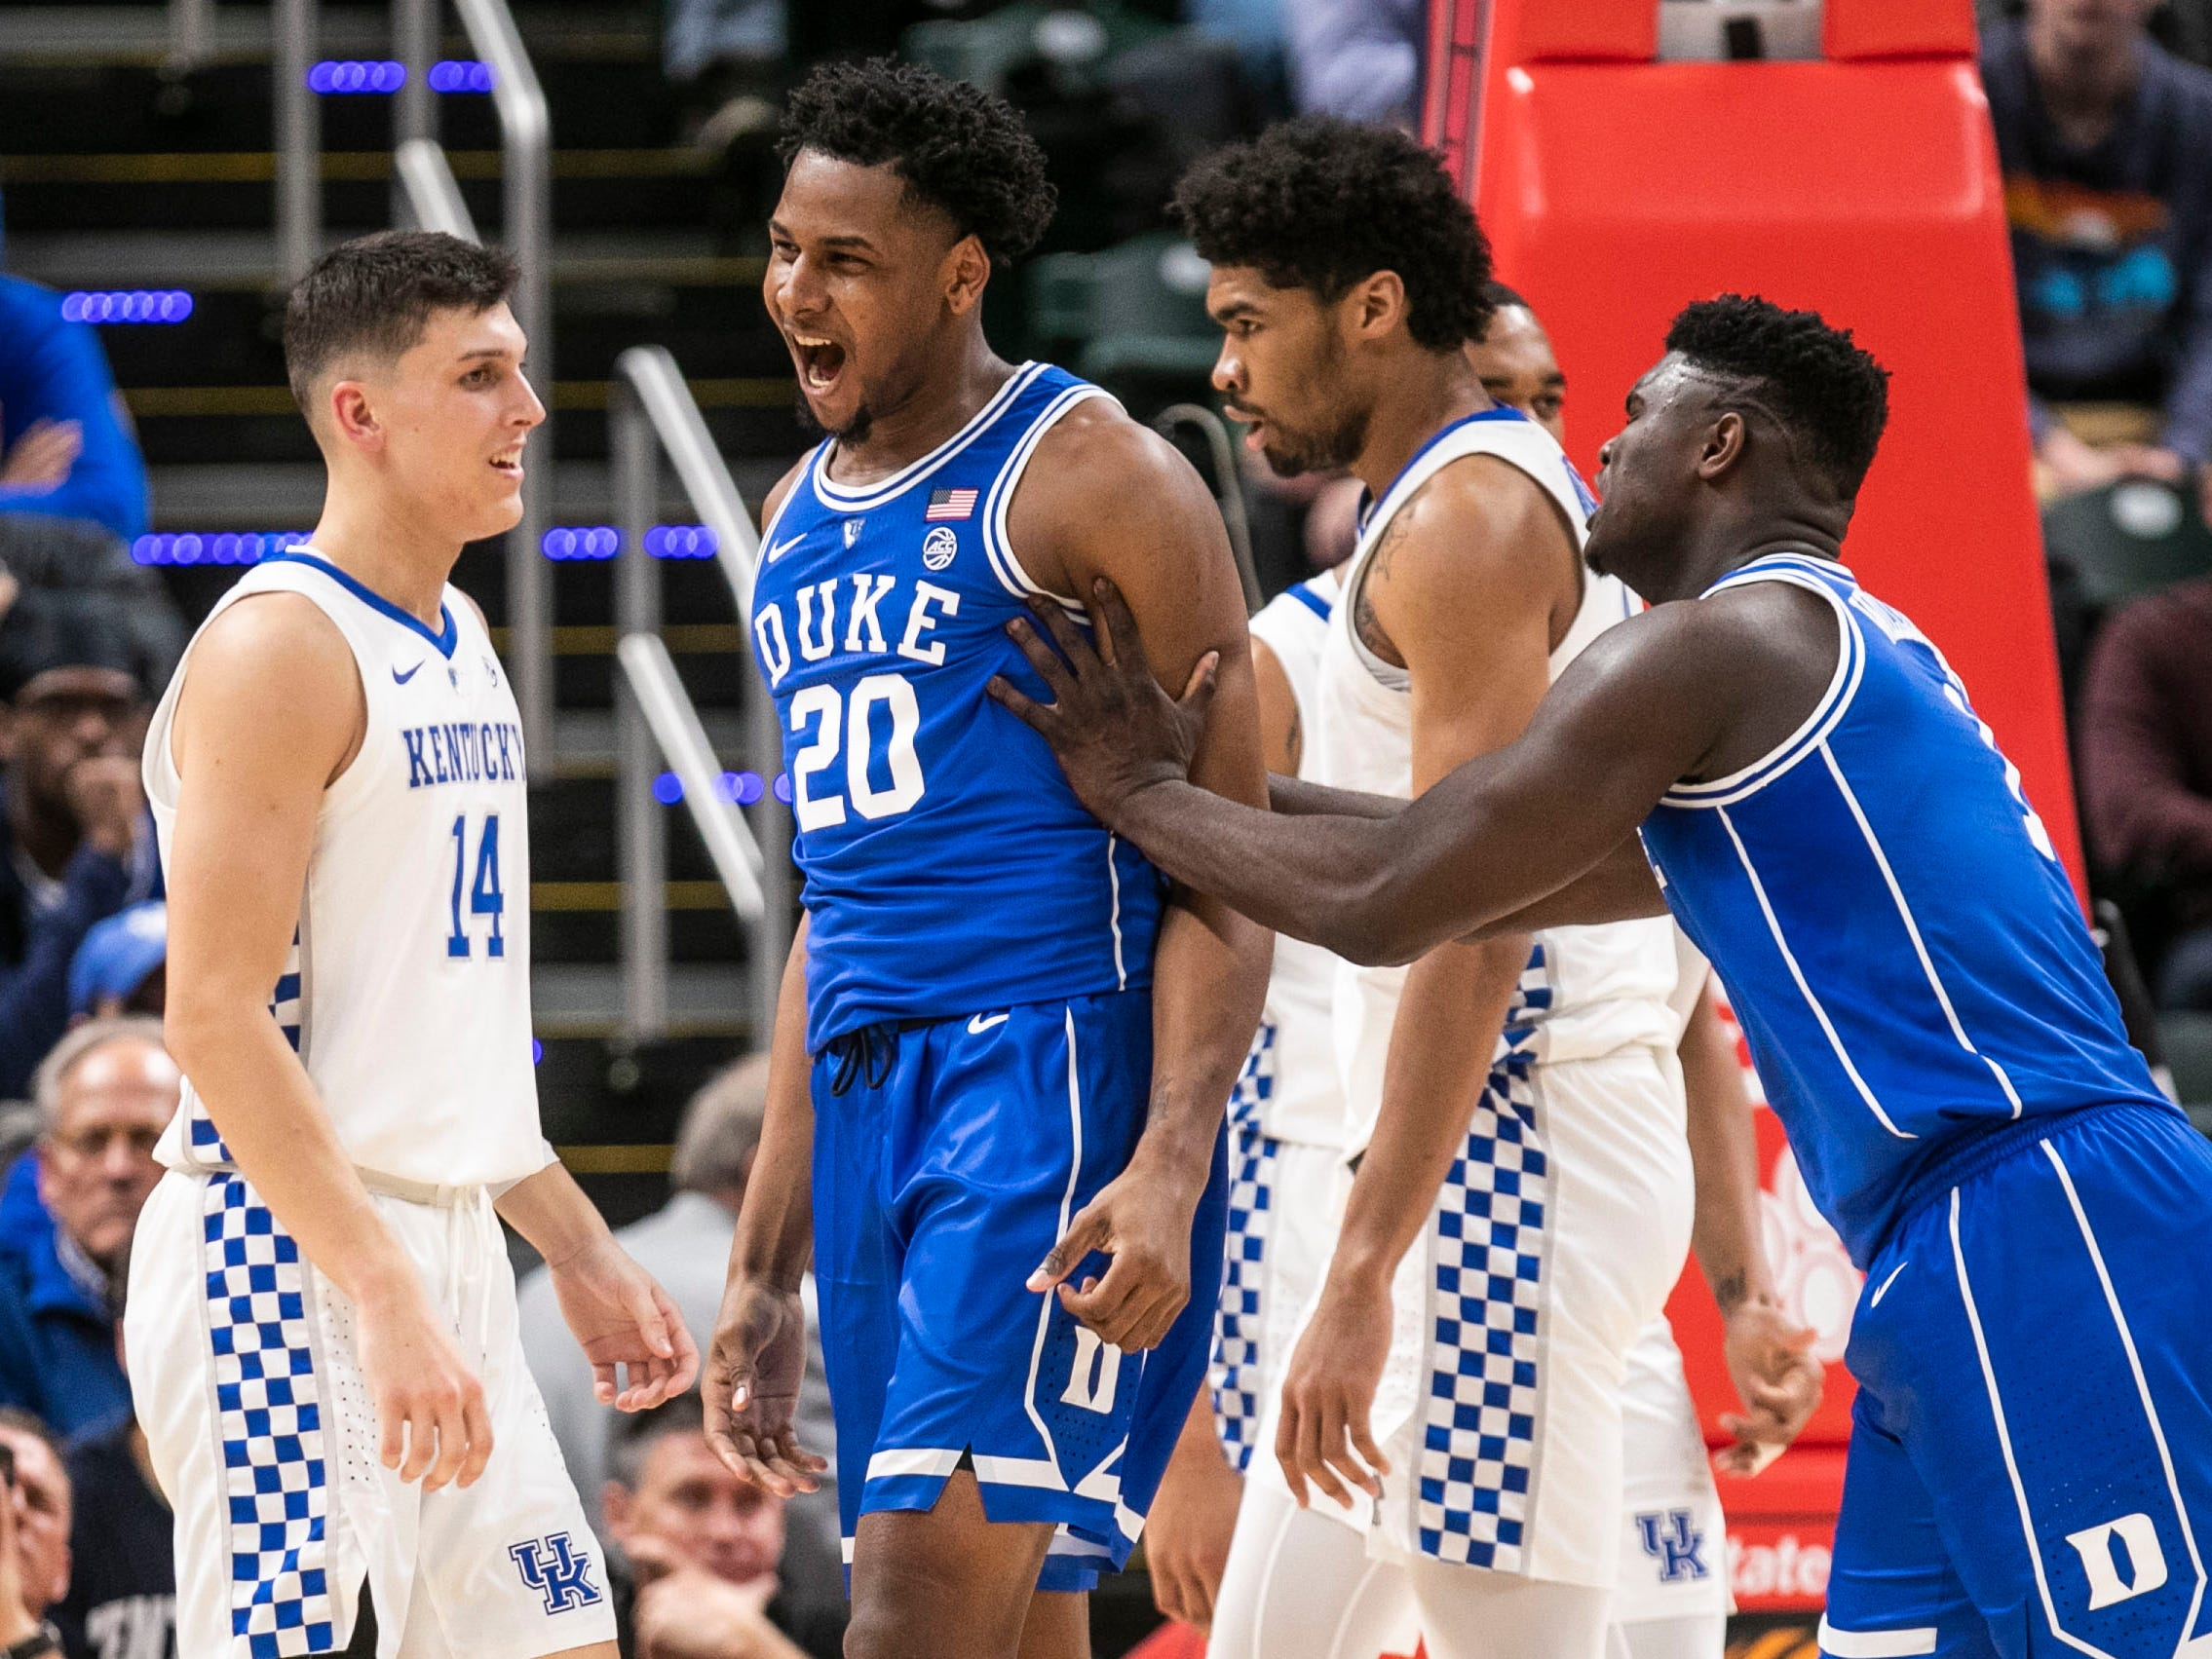 45645f59986c Duke s Marques Bolden celebrates after drawing the foul and two points  against Kentucky s Tyler Herro in